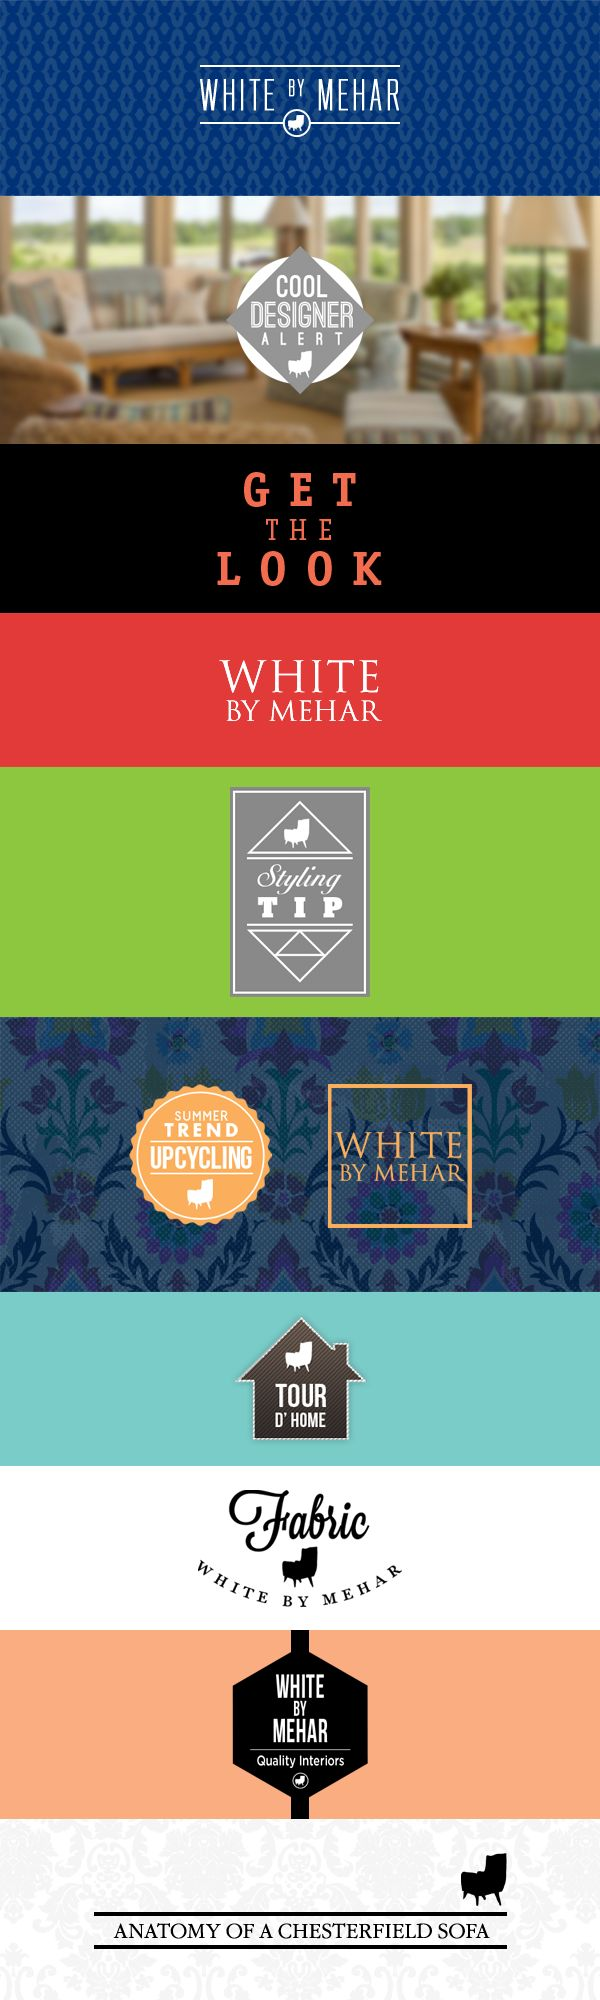 Logos for White by Mehar social media campaigns and segments.